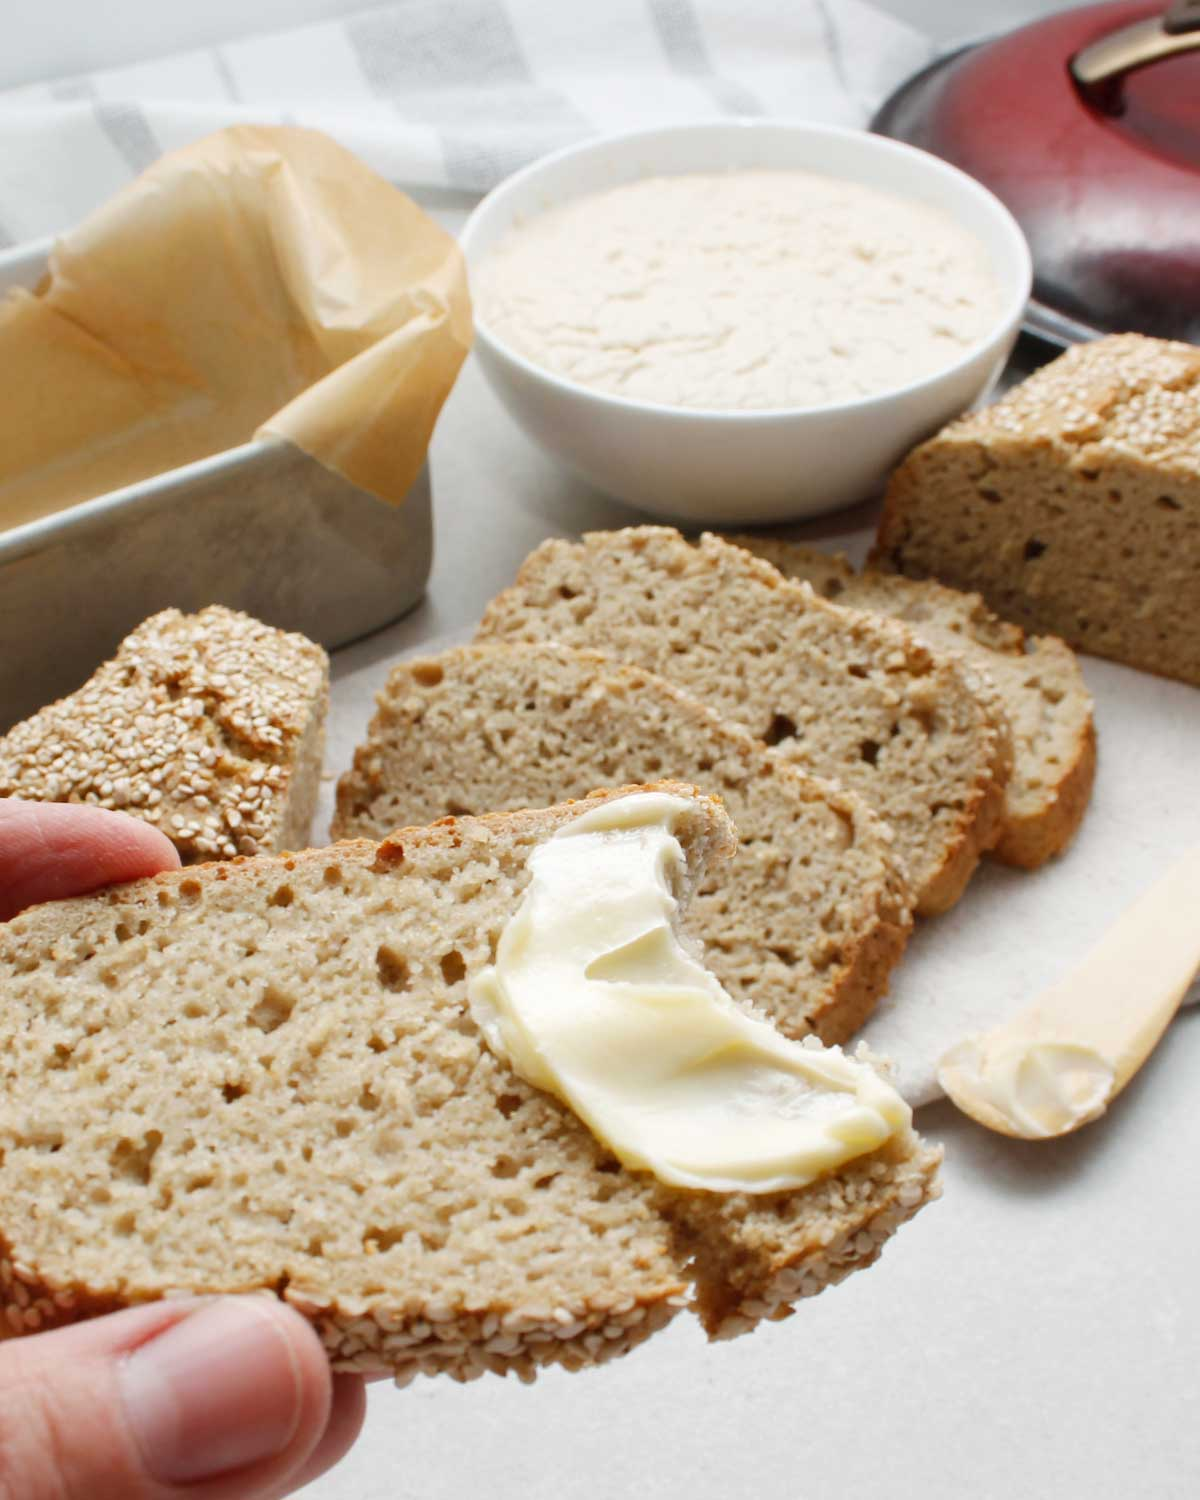 A yummy slice of gluten-free sourdough with butter.